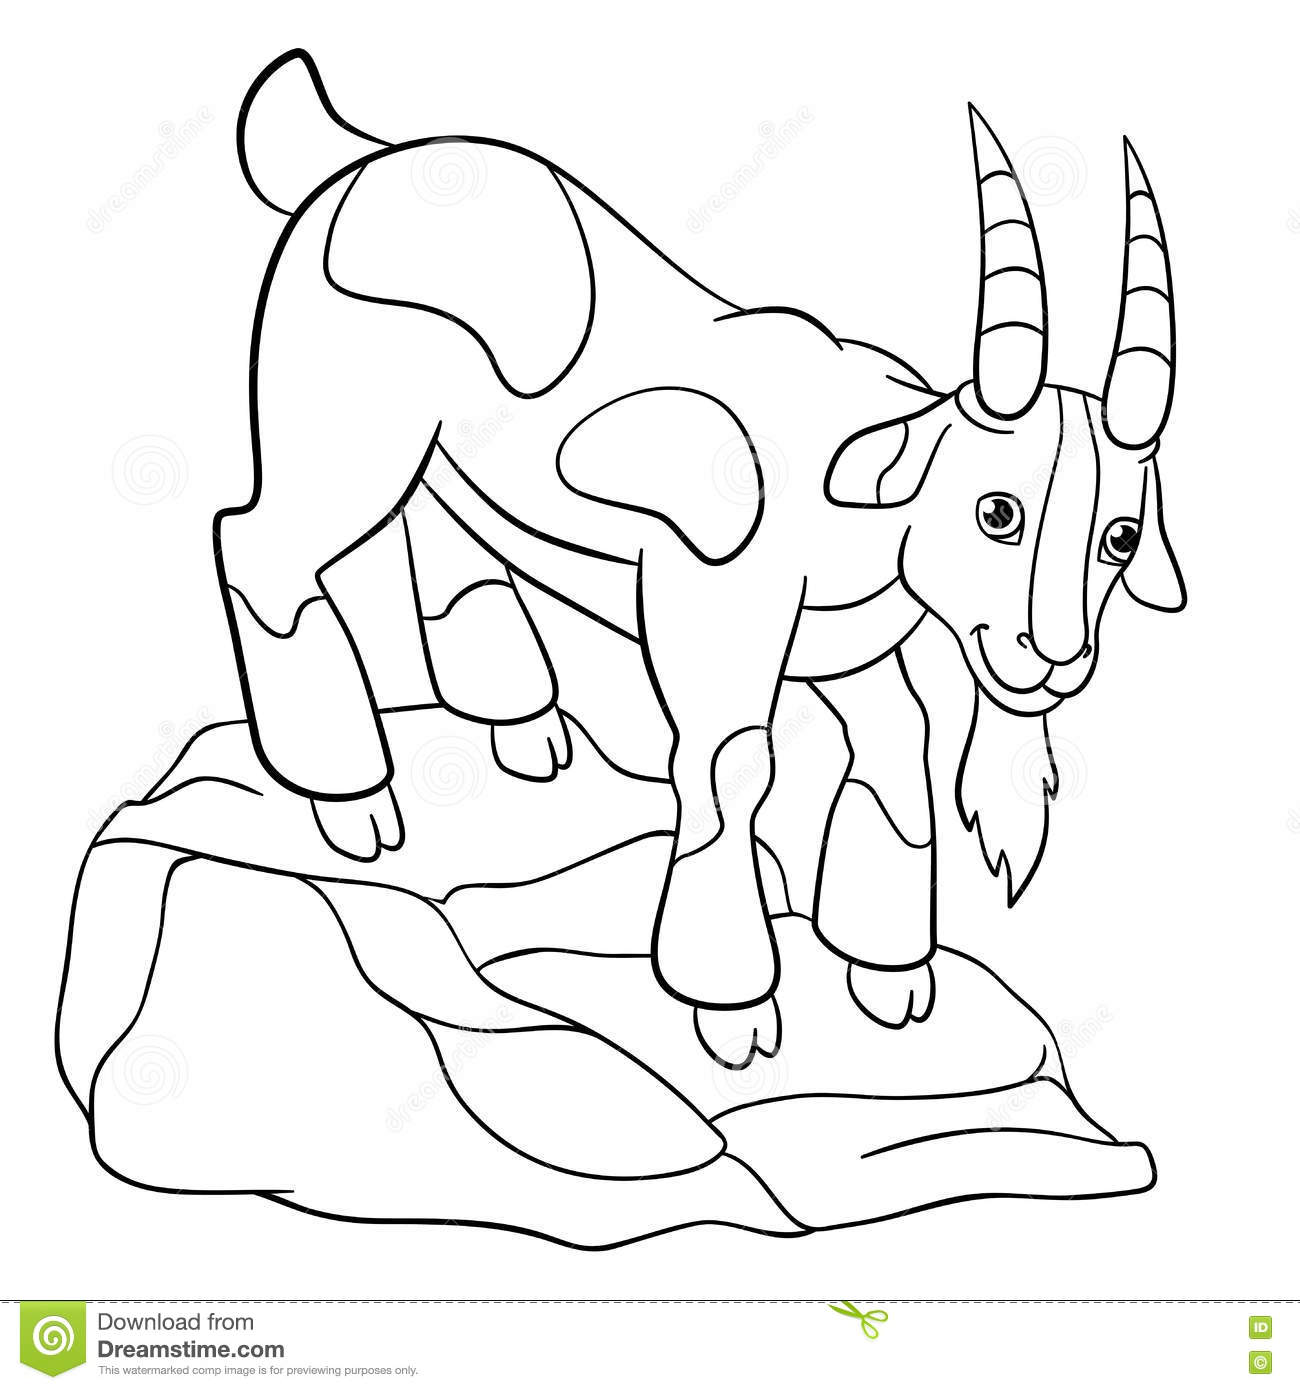 Coloring Pages. Farm Animals. Cute Billy Goat. Stock Vector ...